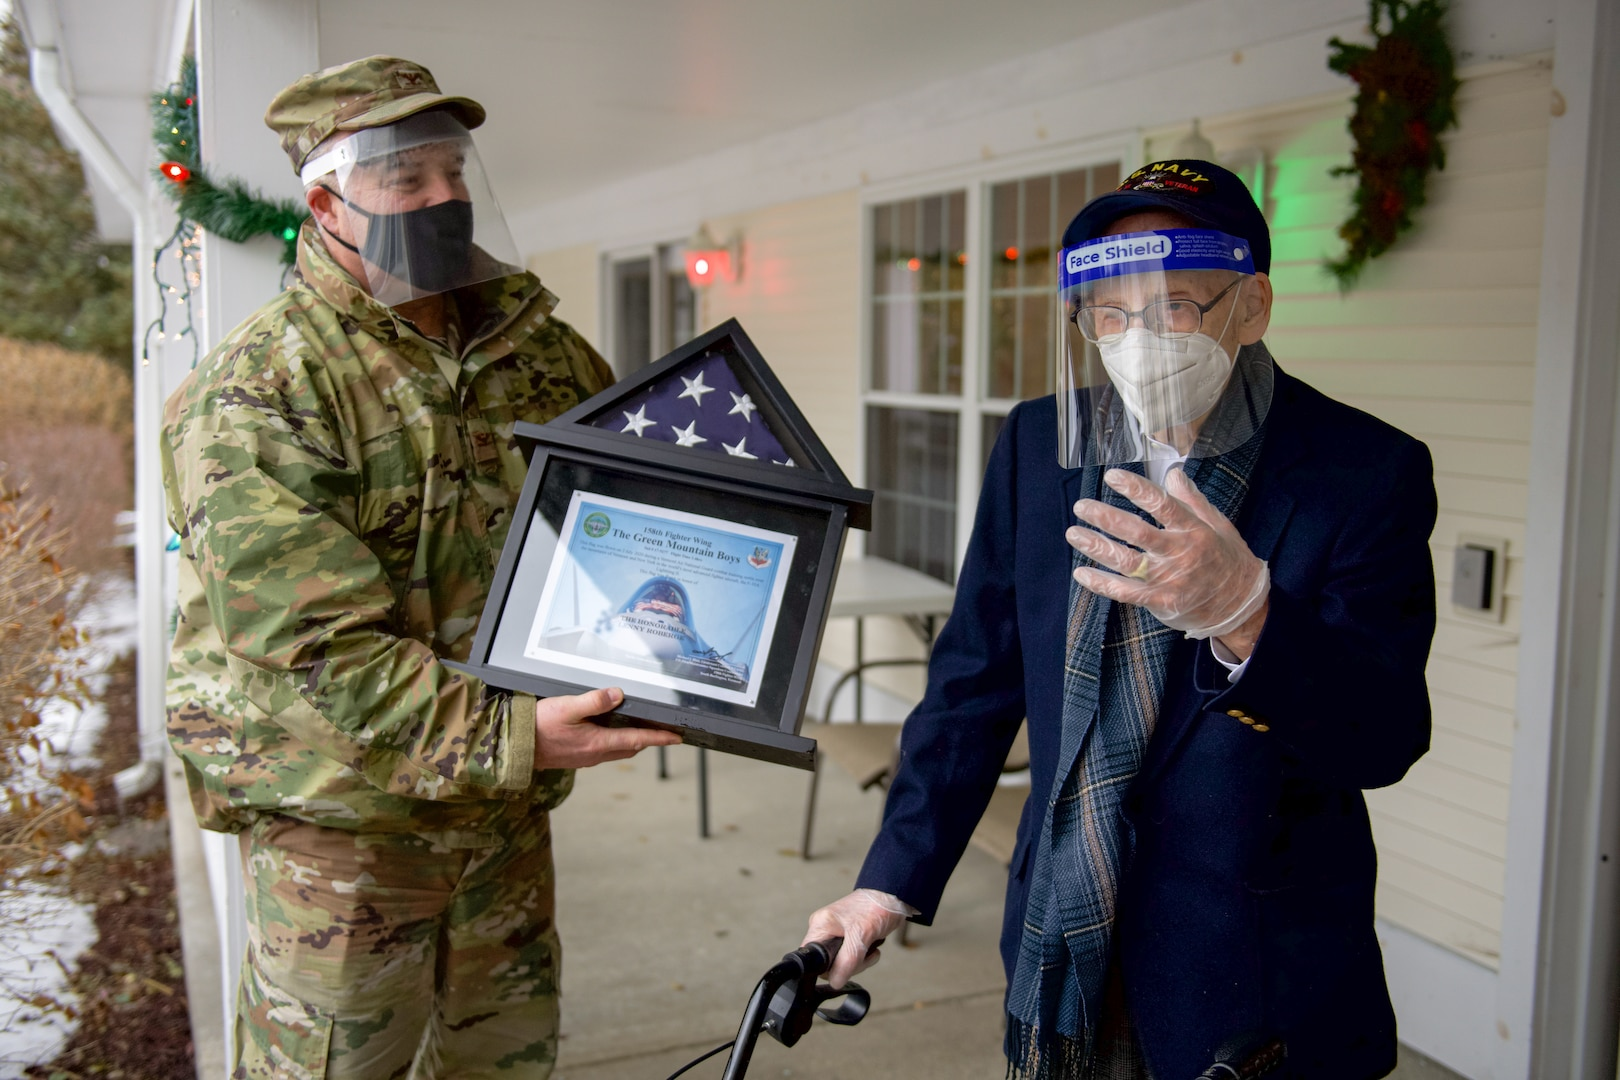 Col. Adam Rice, vice wing commander of the 158th Fighter Wing, Vermont Air National Guard, presents a flag flown in the F-35A Lightning II to WWII veteran Lenny Roberge, Vermont's oldest living veteran, outside his nursing home in South Burlington, Vt., Dec. 22, 2020. To honor Roberge, Airmen from the 158th Fighter Wing had a flag flown in an F-35 during a combat training sortie over the mountains of Vermont and New York.